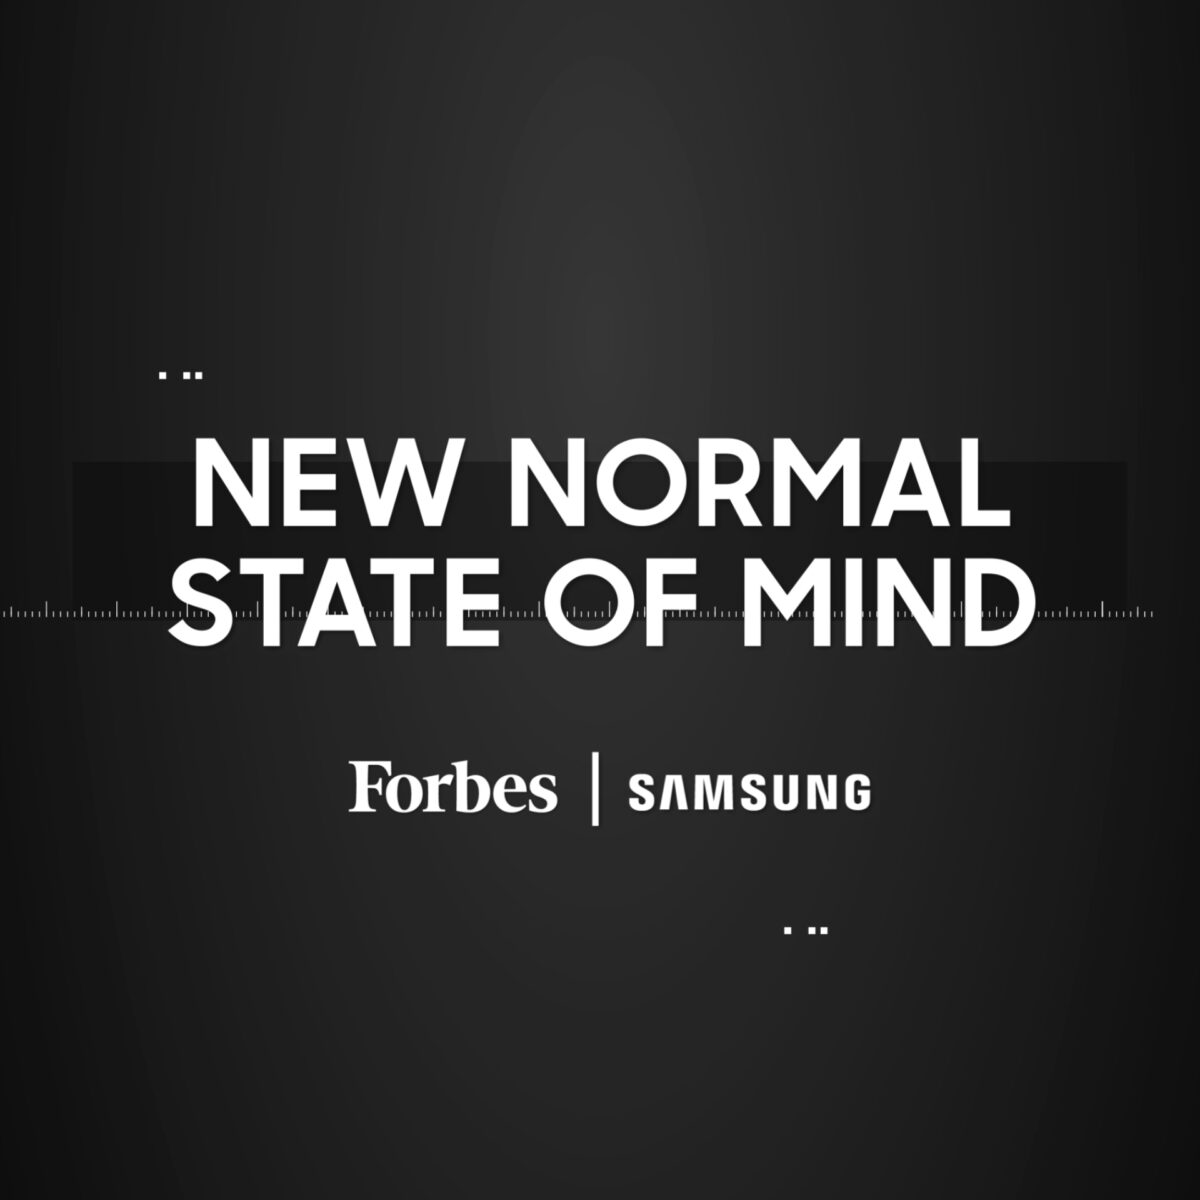 New Normal State of Mind